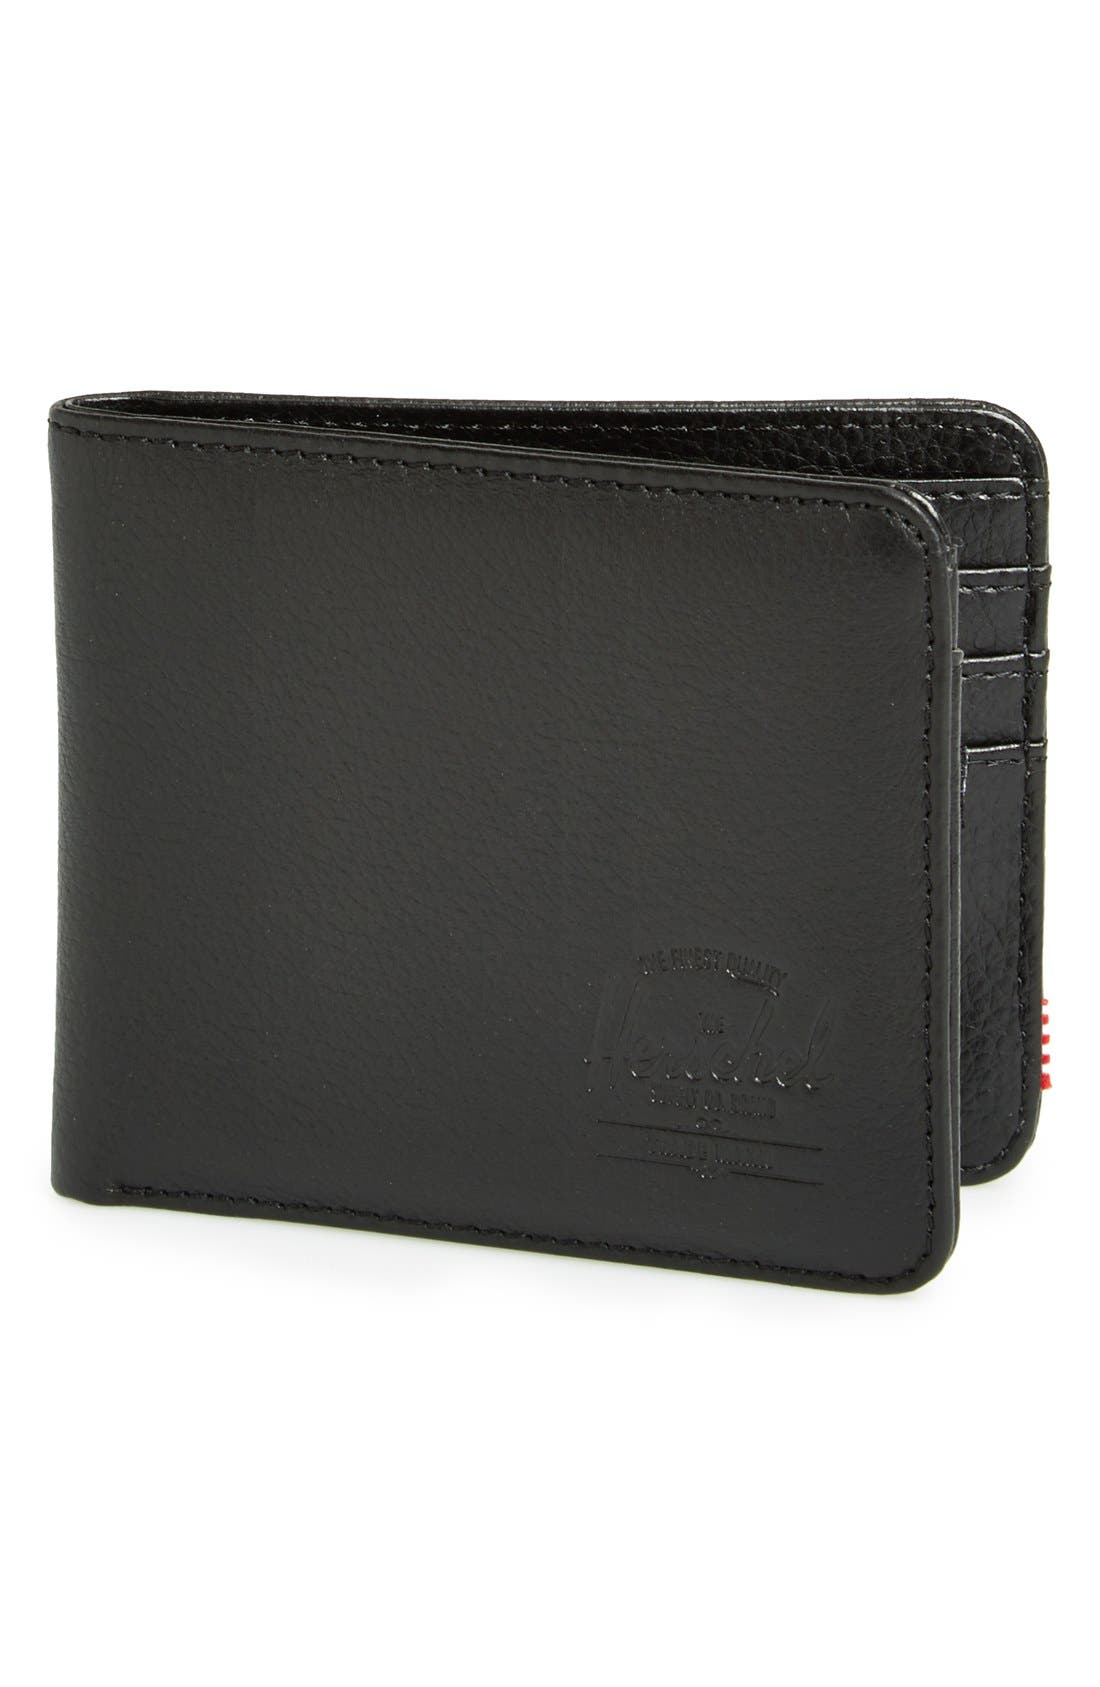 Alternate Image 1 Selected - Herschel Supply Co. 'Hank' Leather Bifold Wallet